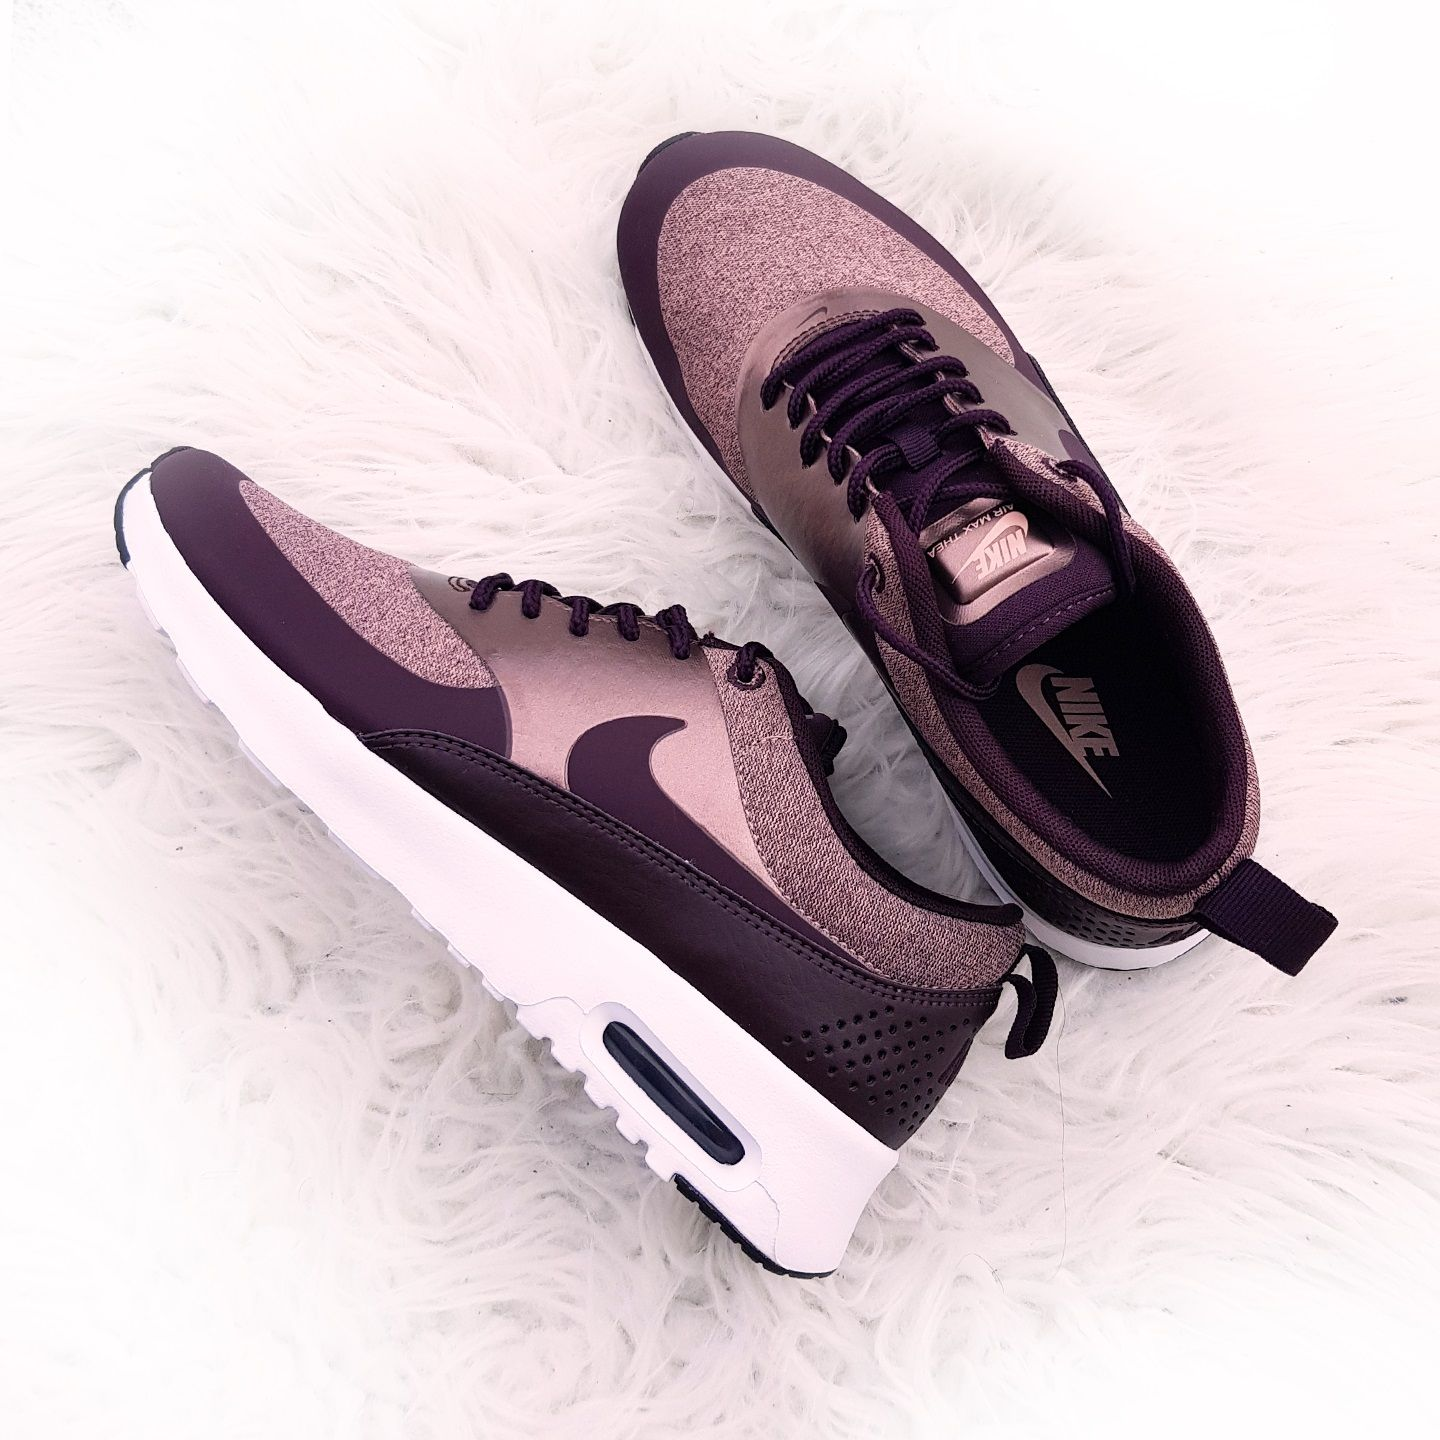 de210e9e9b35 Nike Air Max Thea Knit - Port Wine Particle Pink Schwarz Metallic Mahogany